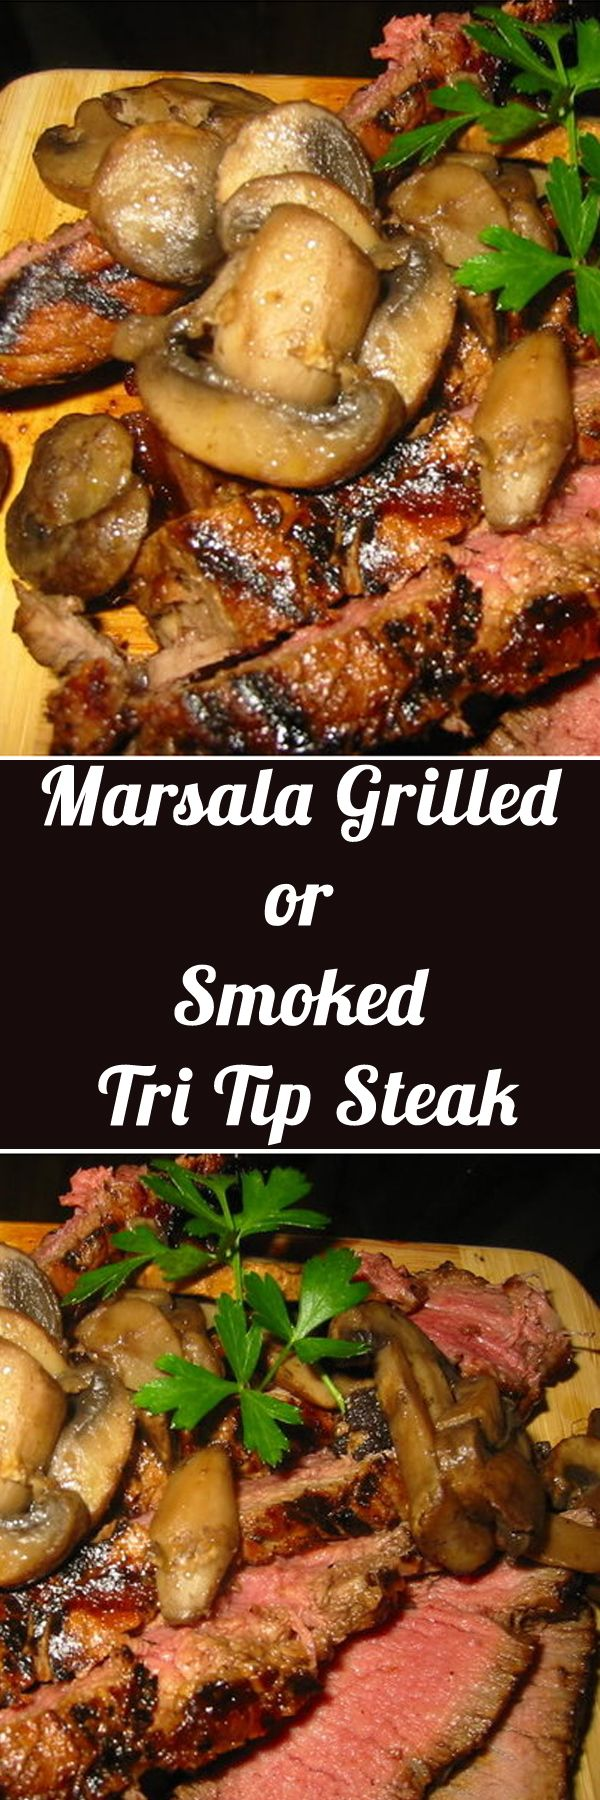 Marsala Grilled or Smoked Tri Tip Steak recipezazz.com